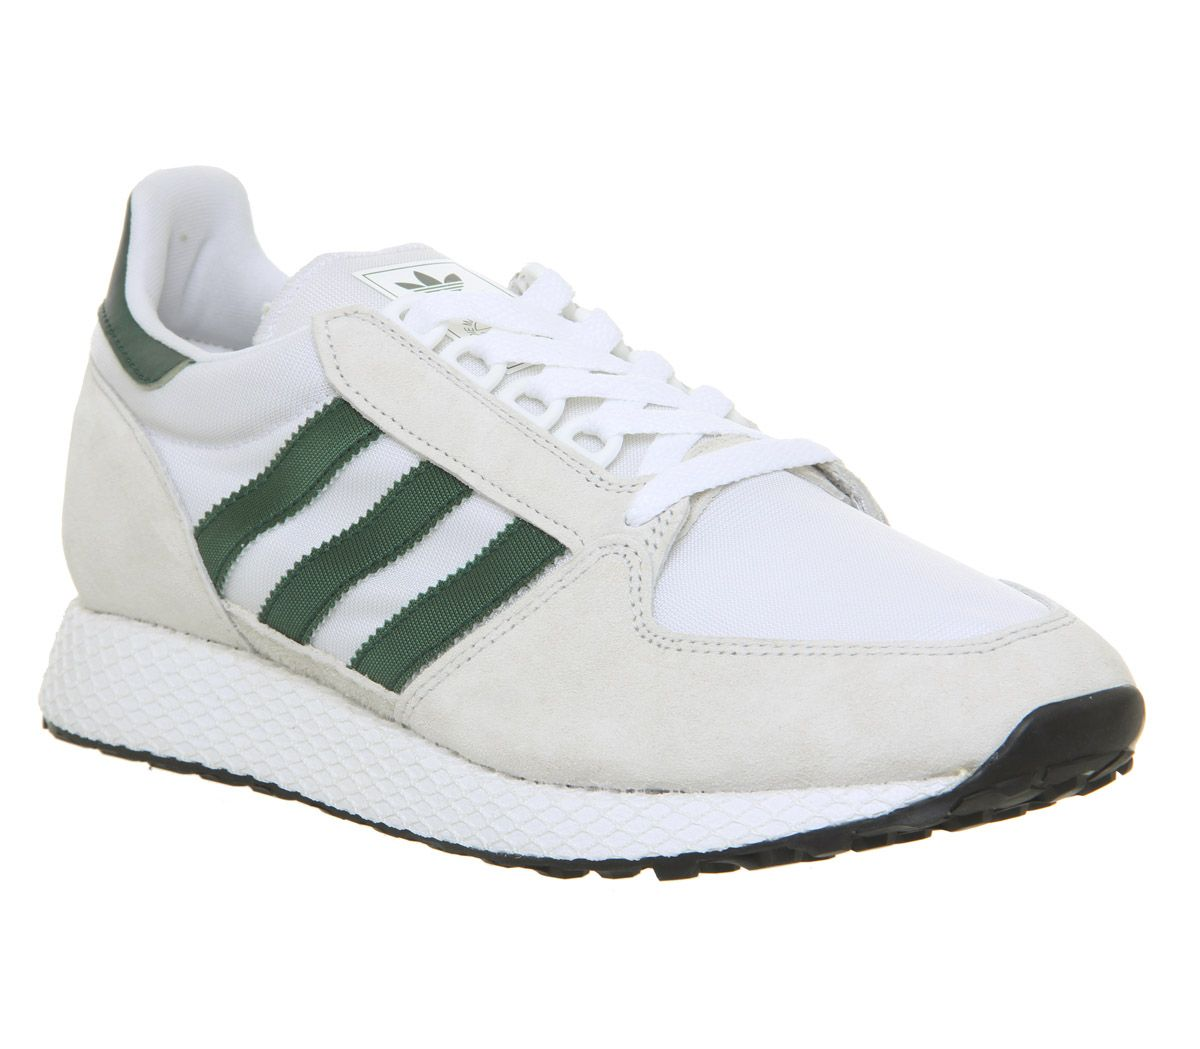 5e019953266 adidas Forest Grove Trainers Crystal White Collegiate Green Core ...